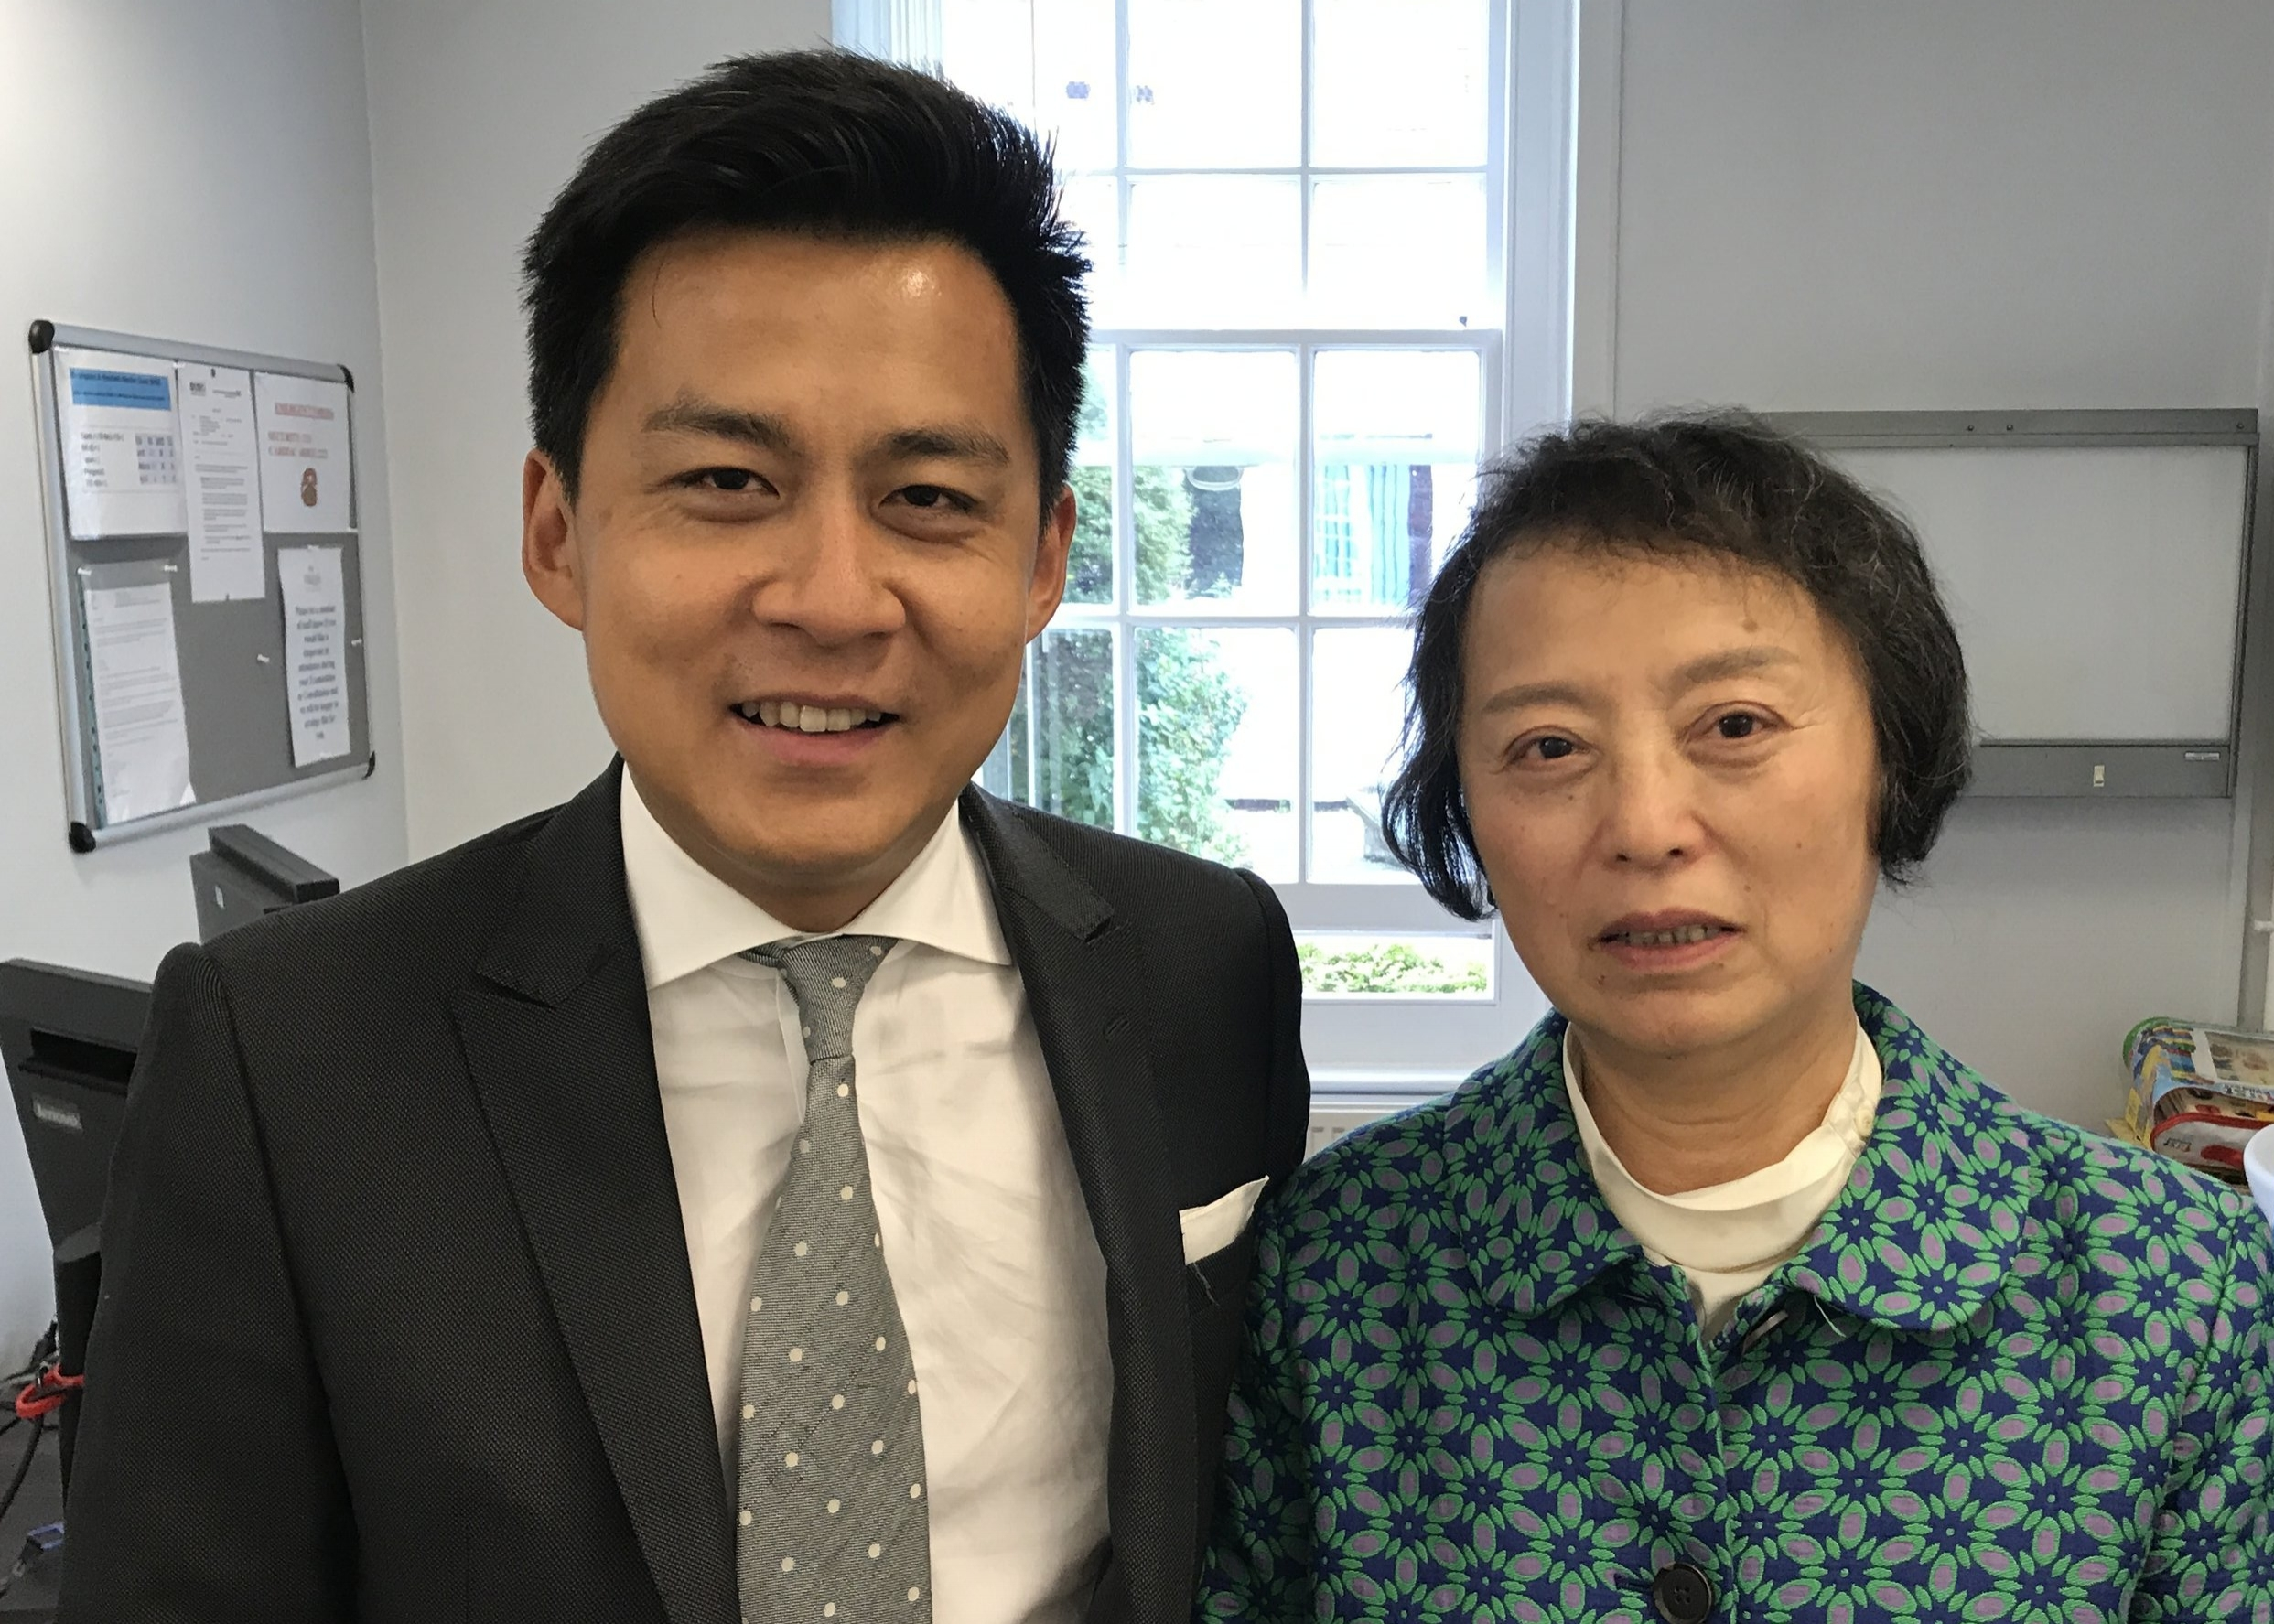 Pictured with a patient from China where the incidence of non-smoking lung cancer is high. Detailed knowledge of the underlying pathology is critical to the management options and for maximum preservation of precious lung tissue.